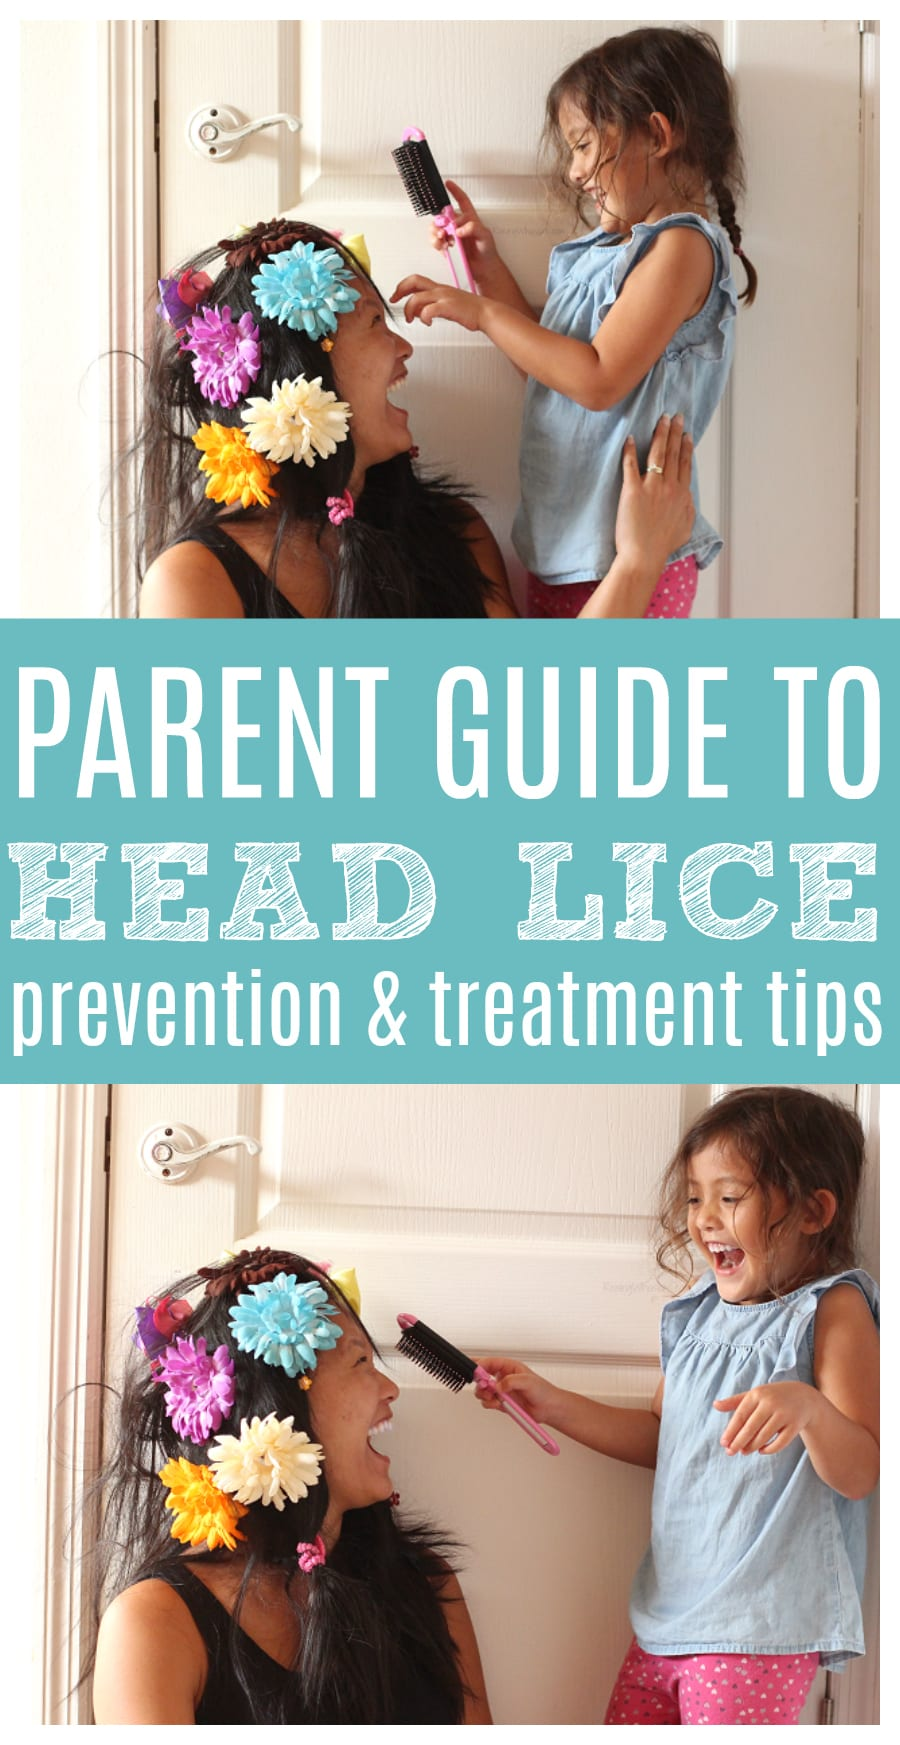 Parent guide to head lice